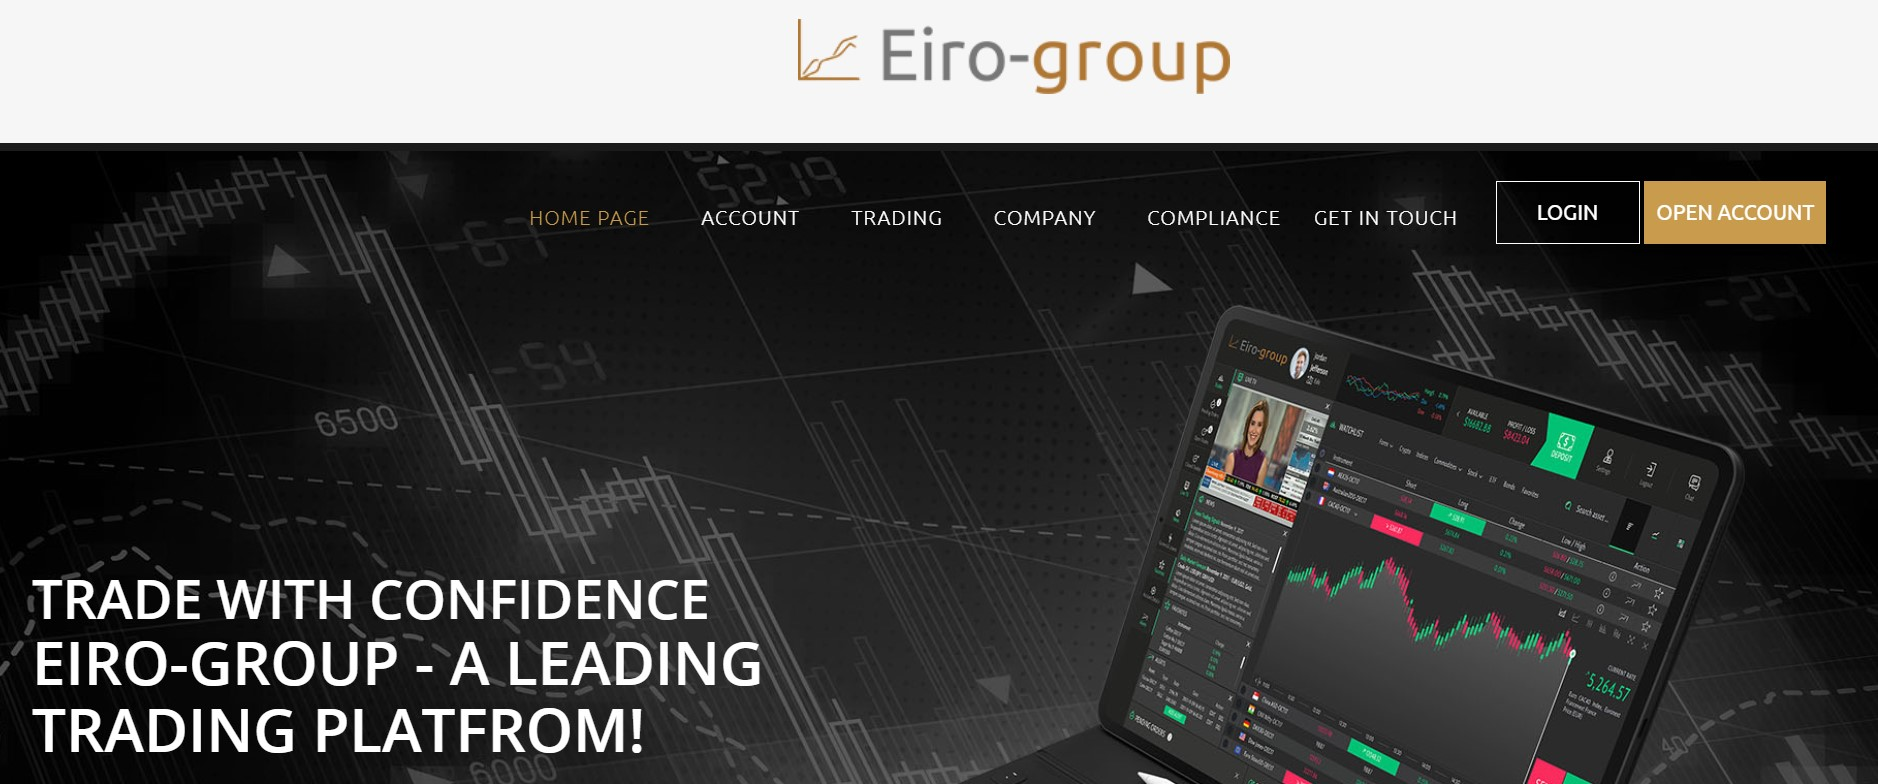 Eiro-group website